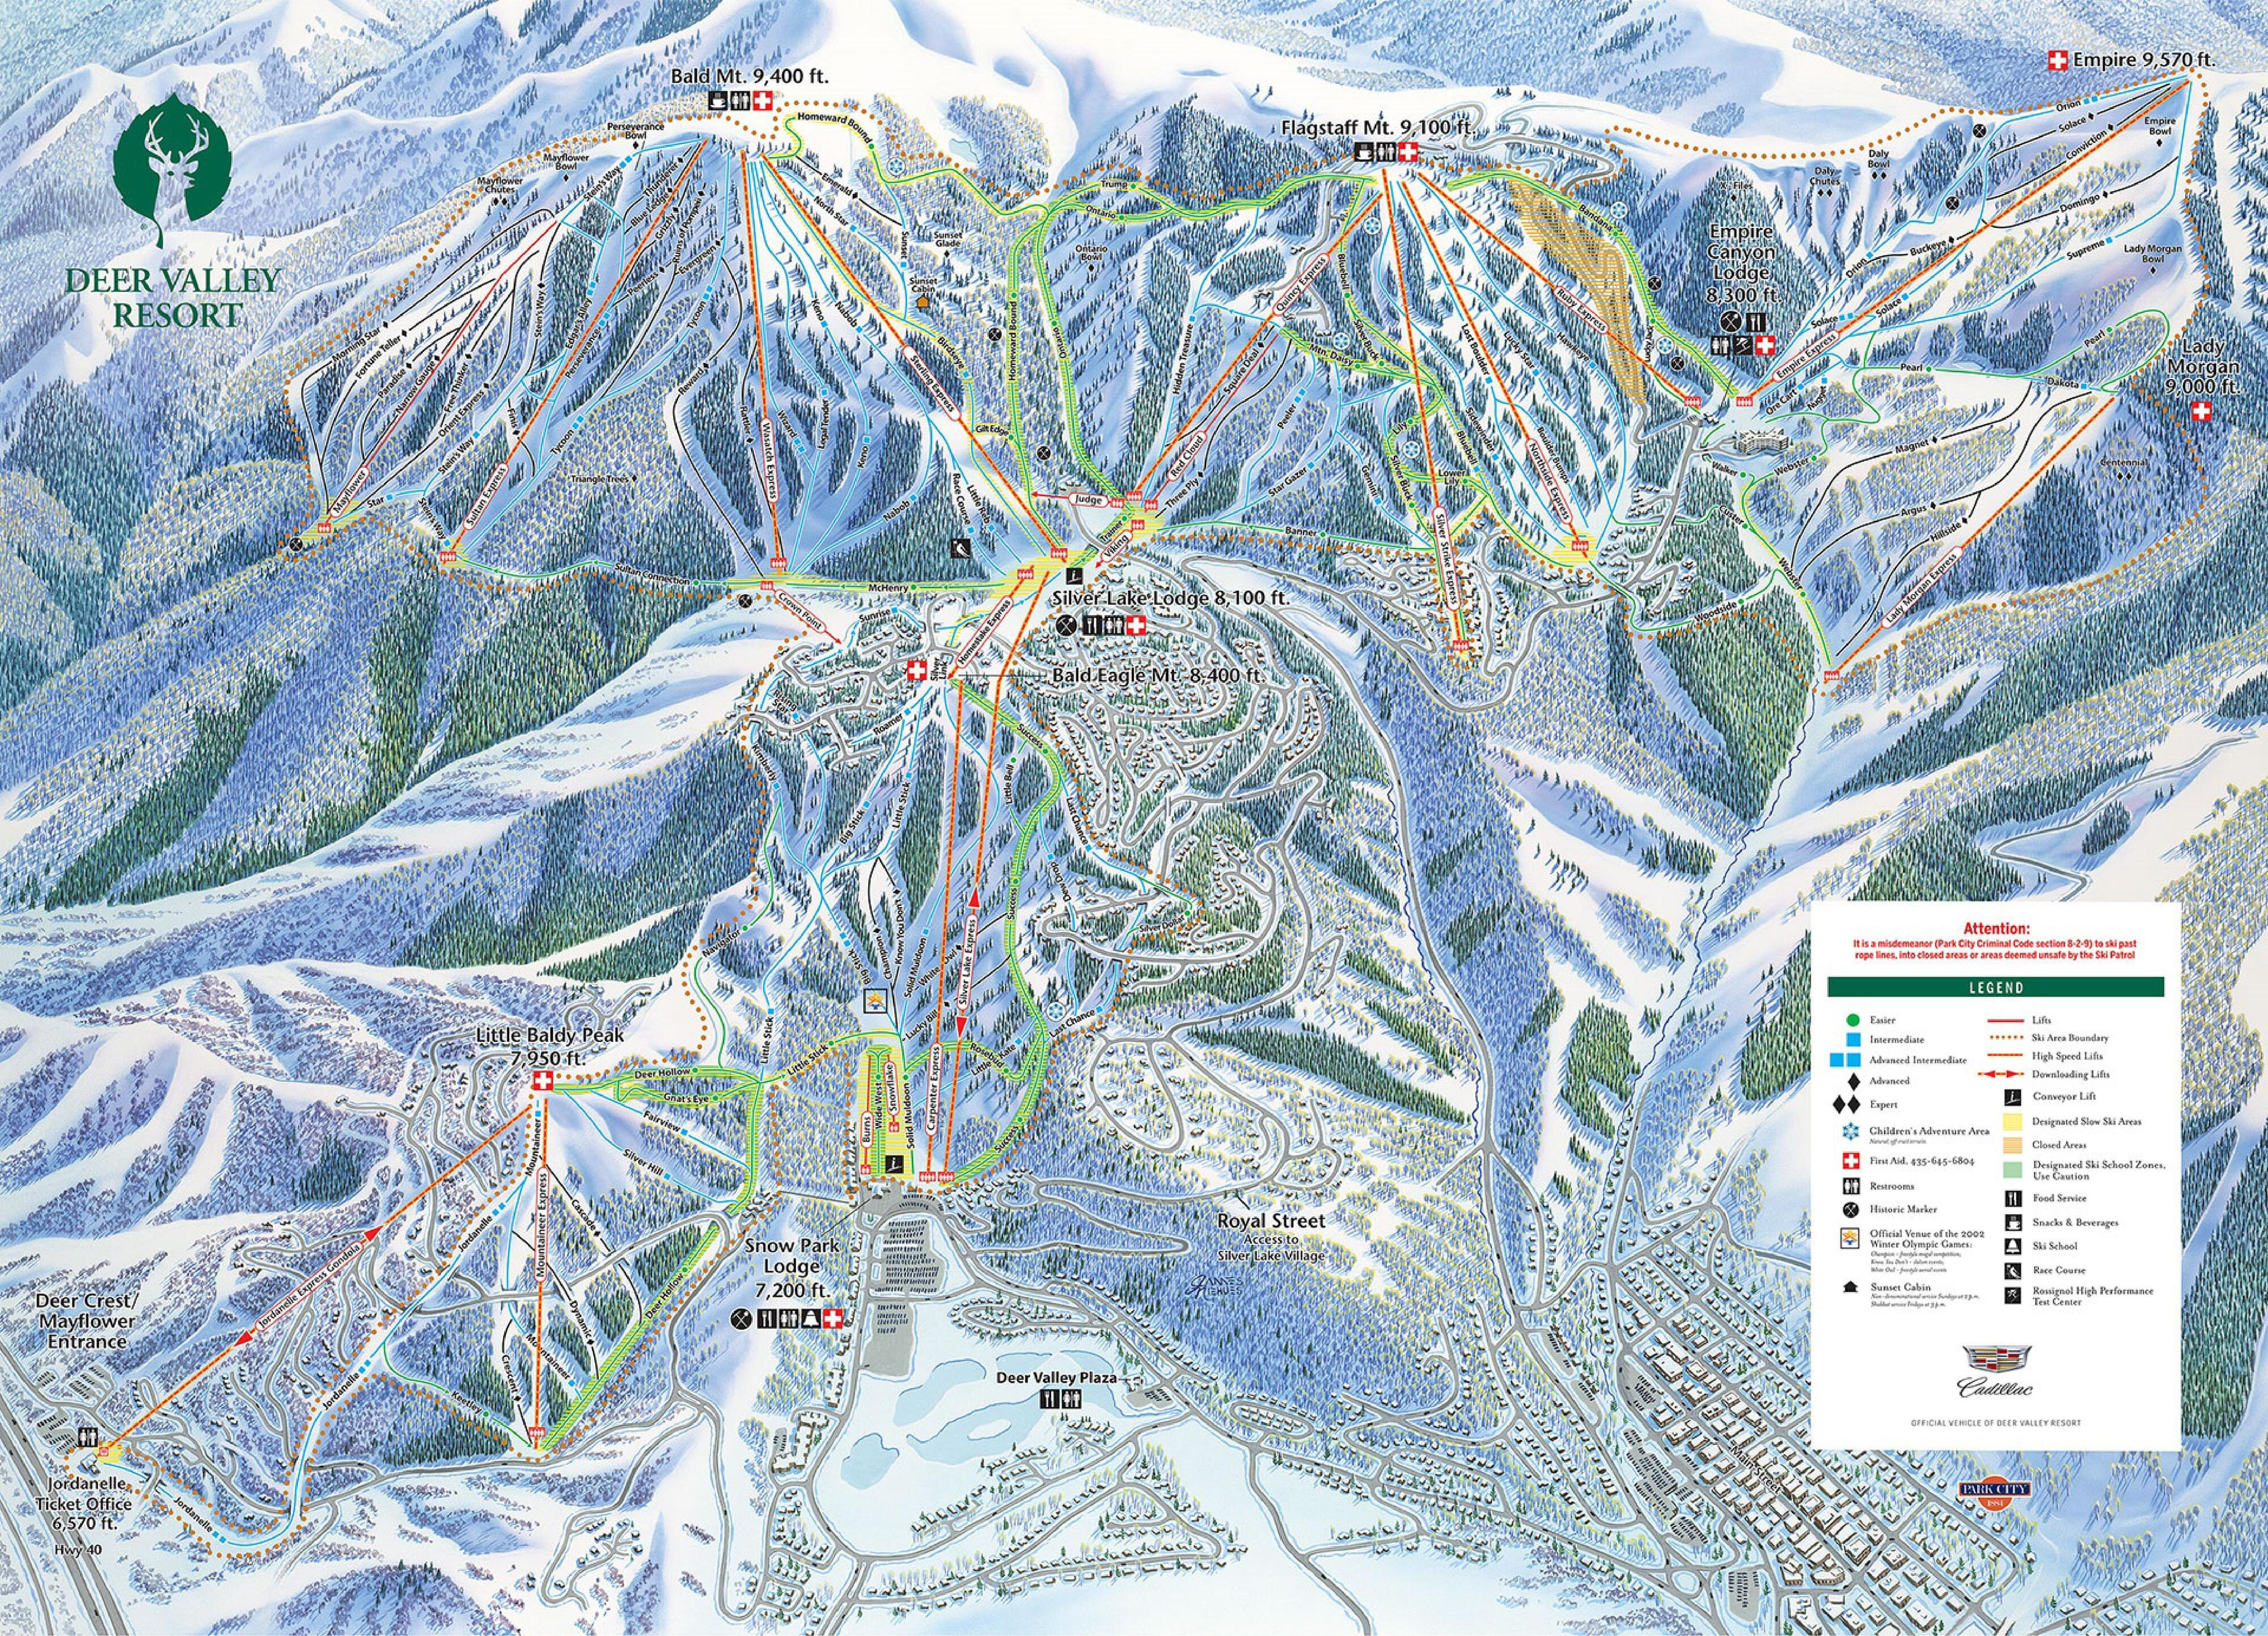 Deer Valley Piste / Trail Map